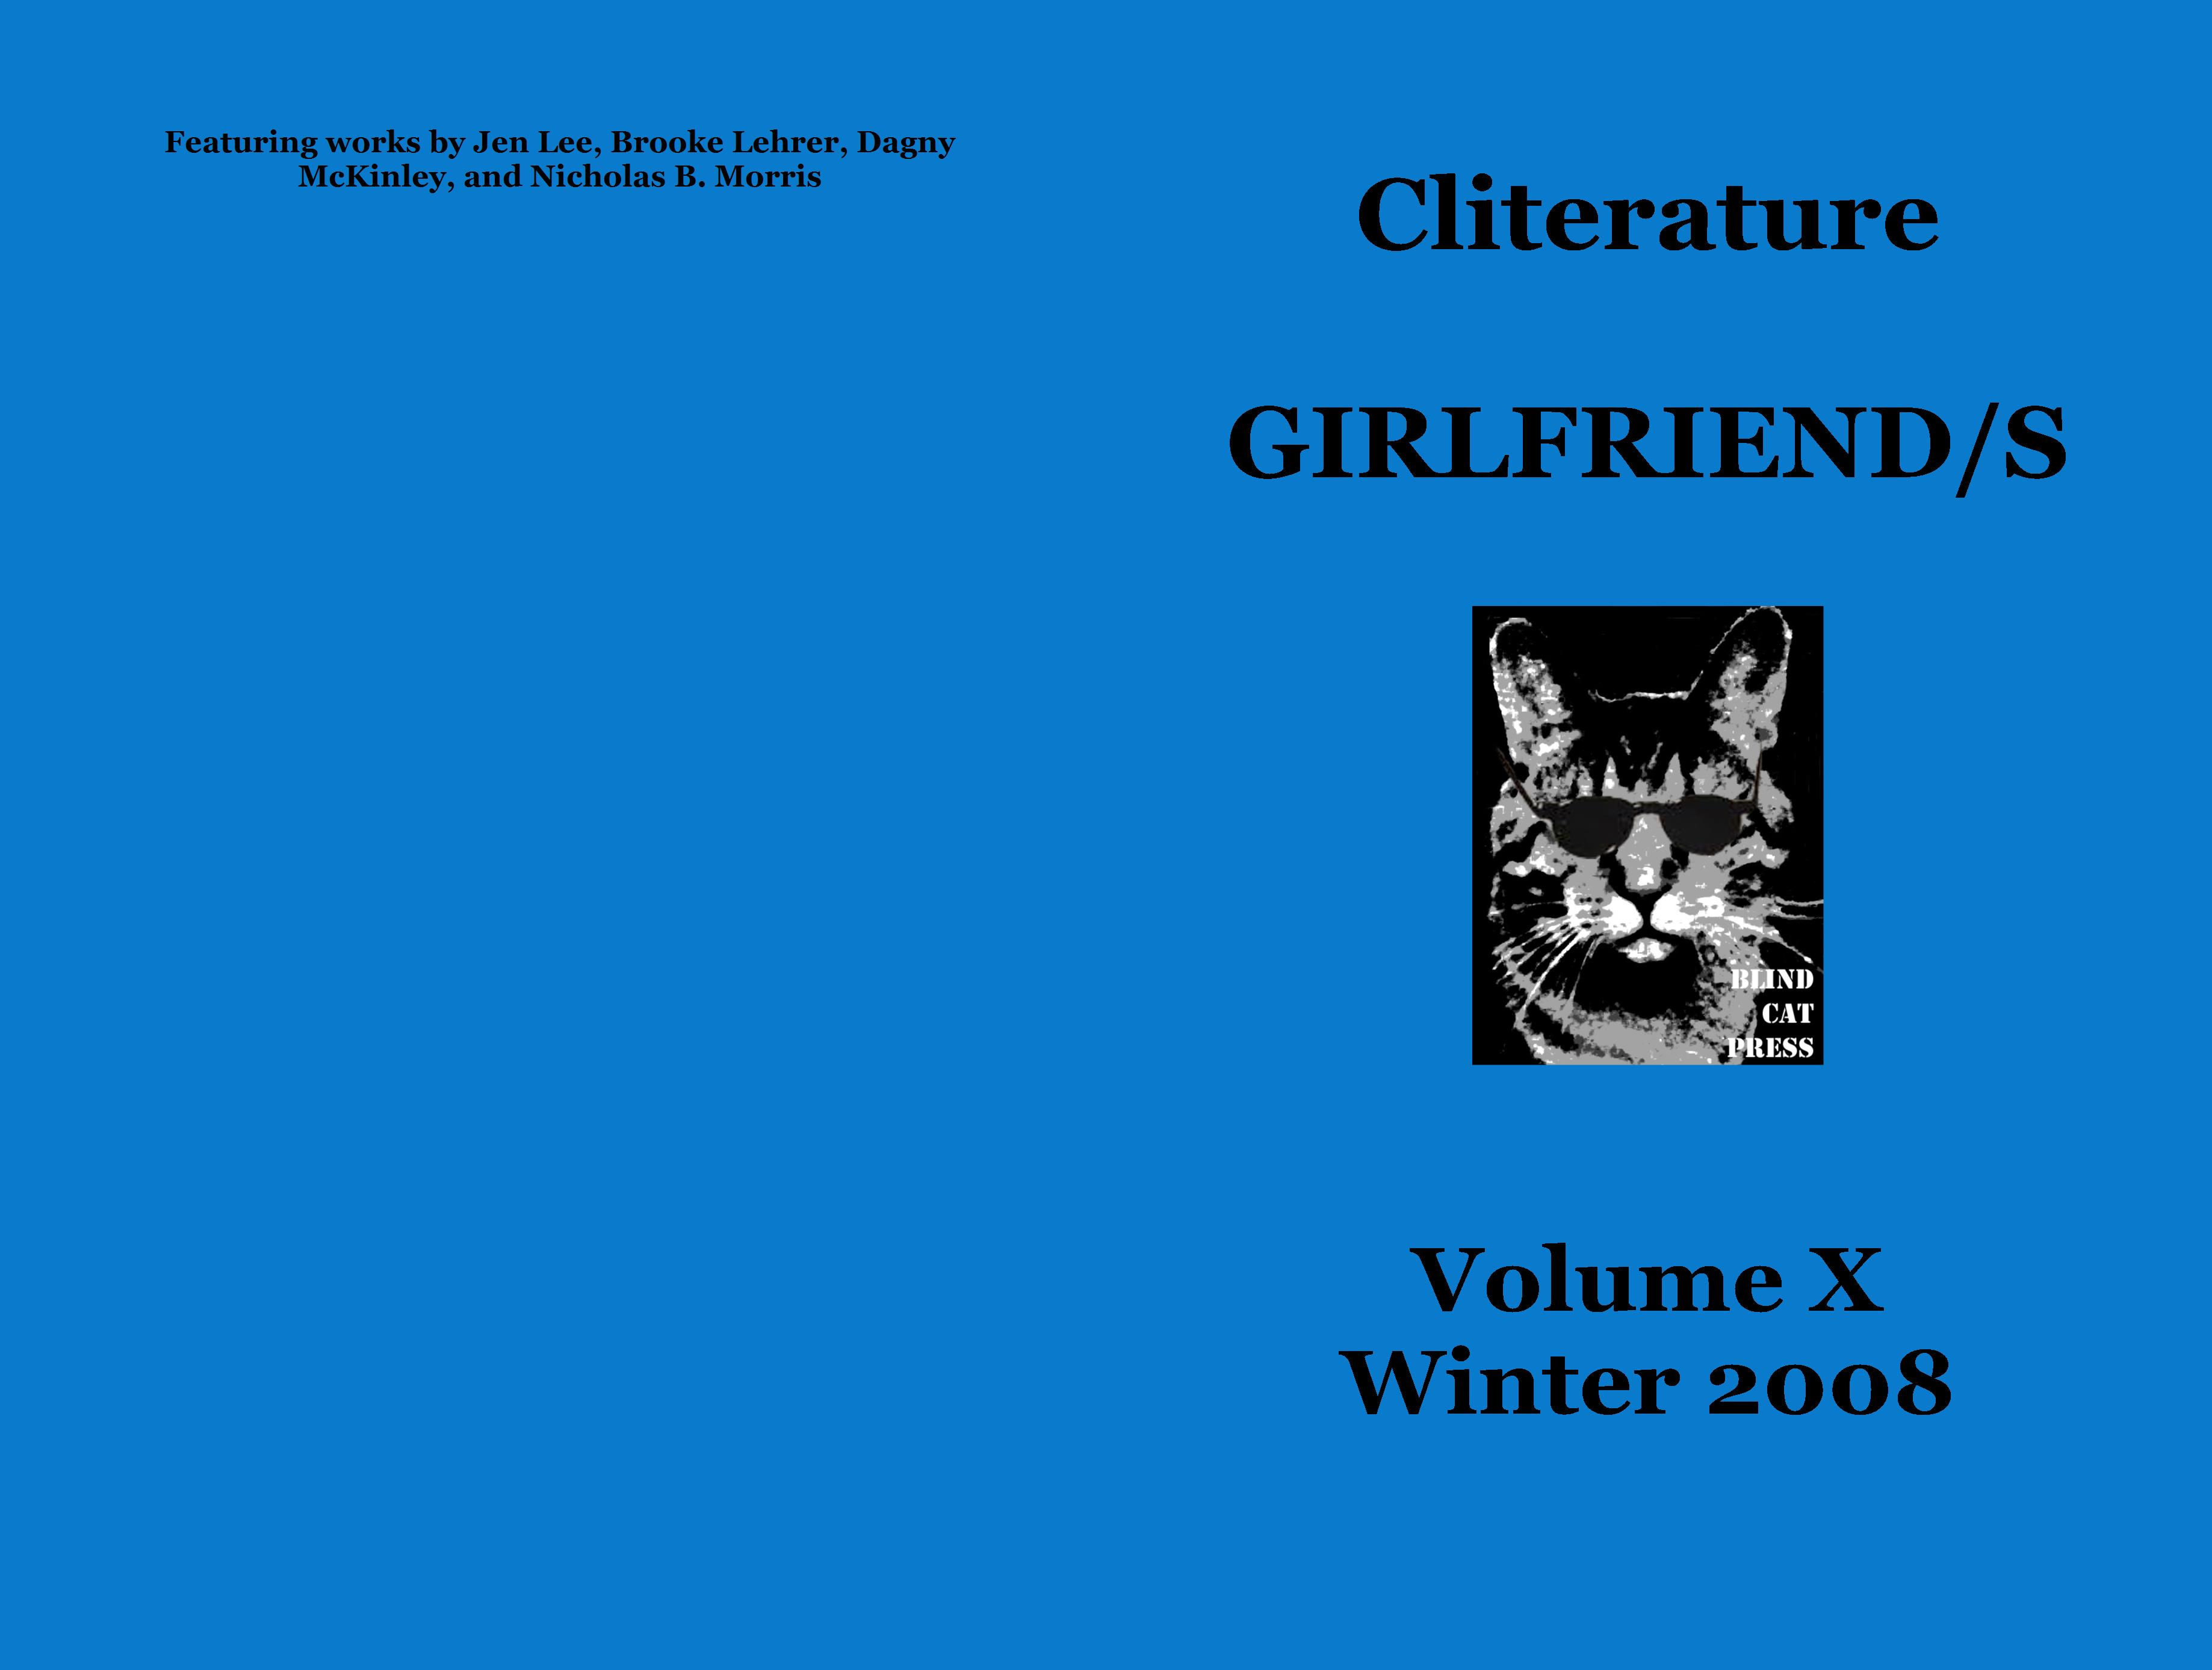 Cliterature GIRLFRIEND/S cover image